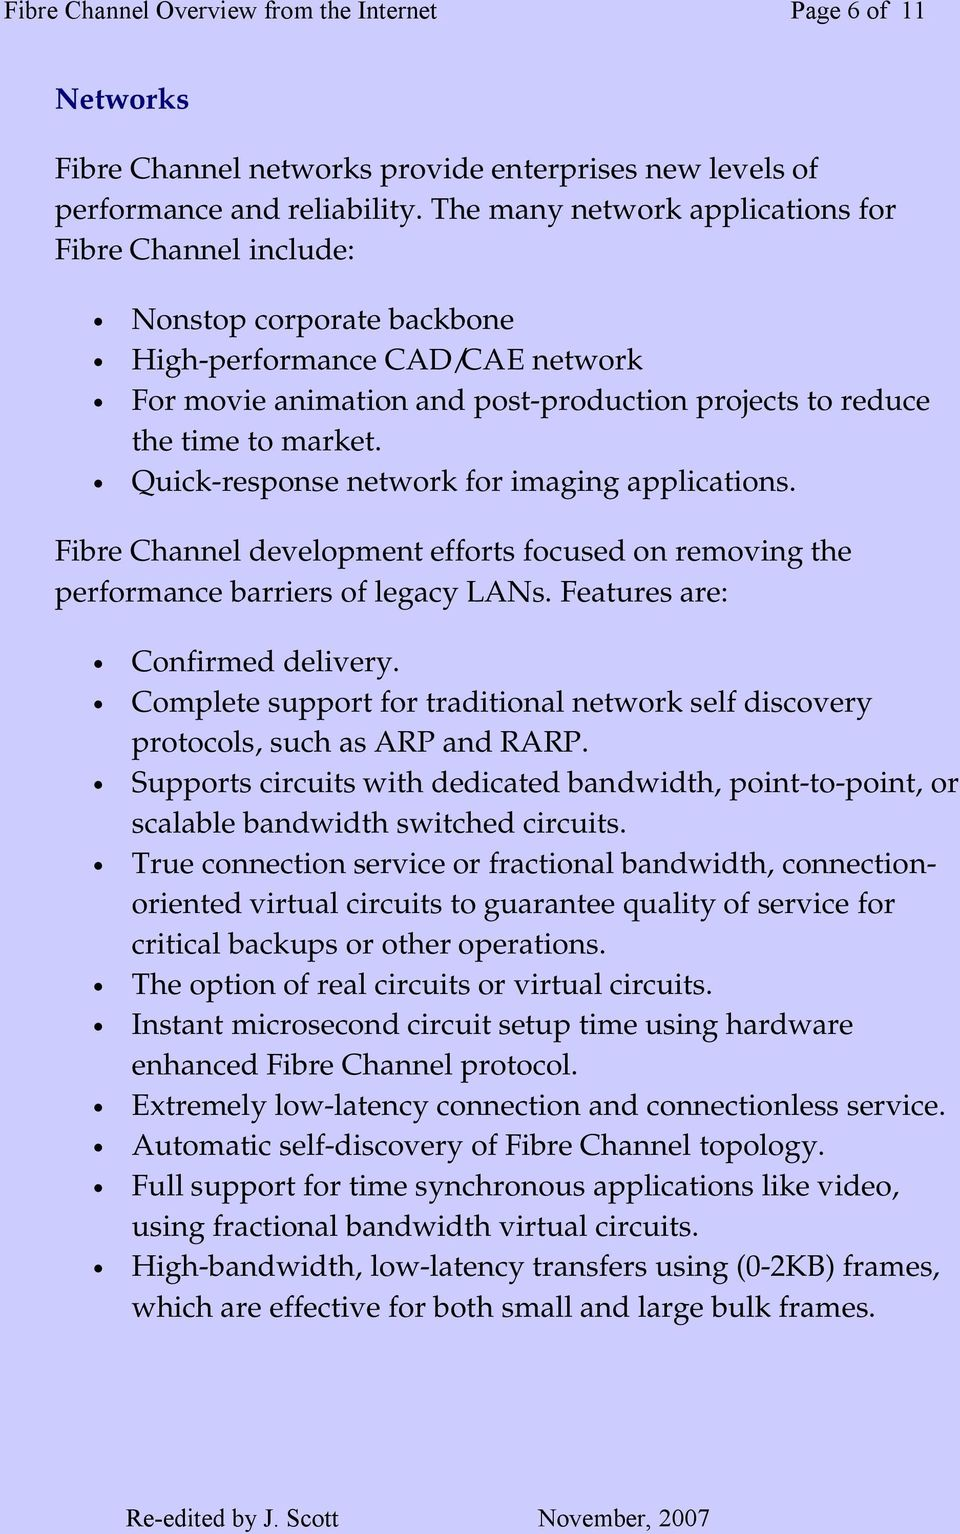 Quick-response network for imaging applications. Fibre Channel development efforts focused on removing the performance barriers of legacy LANs. Features are: Confirmed delivery.